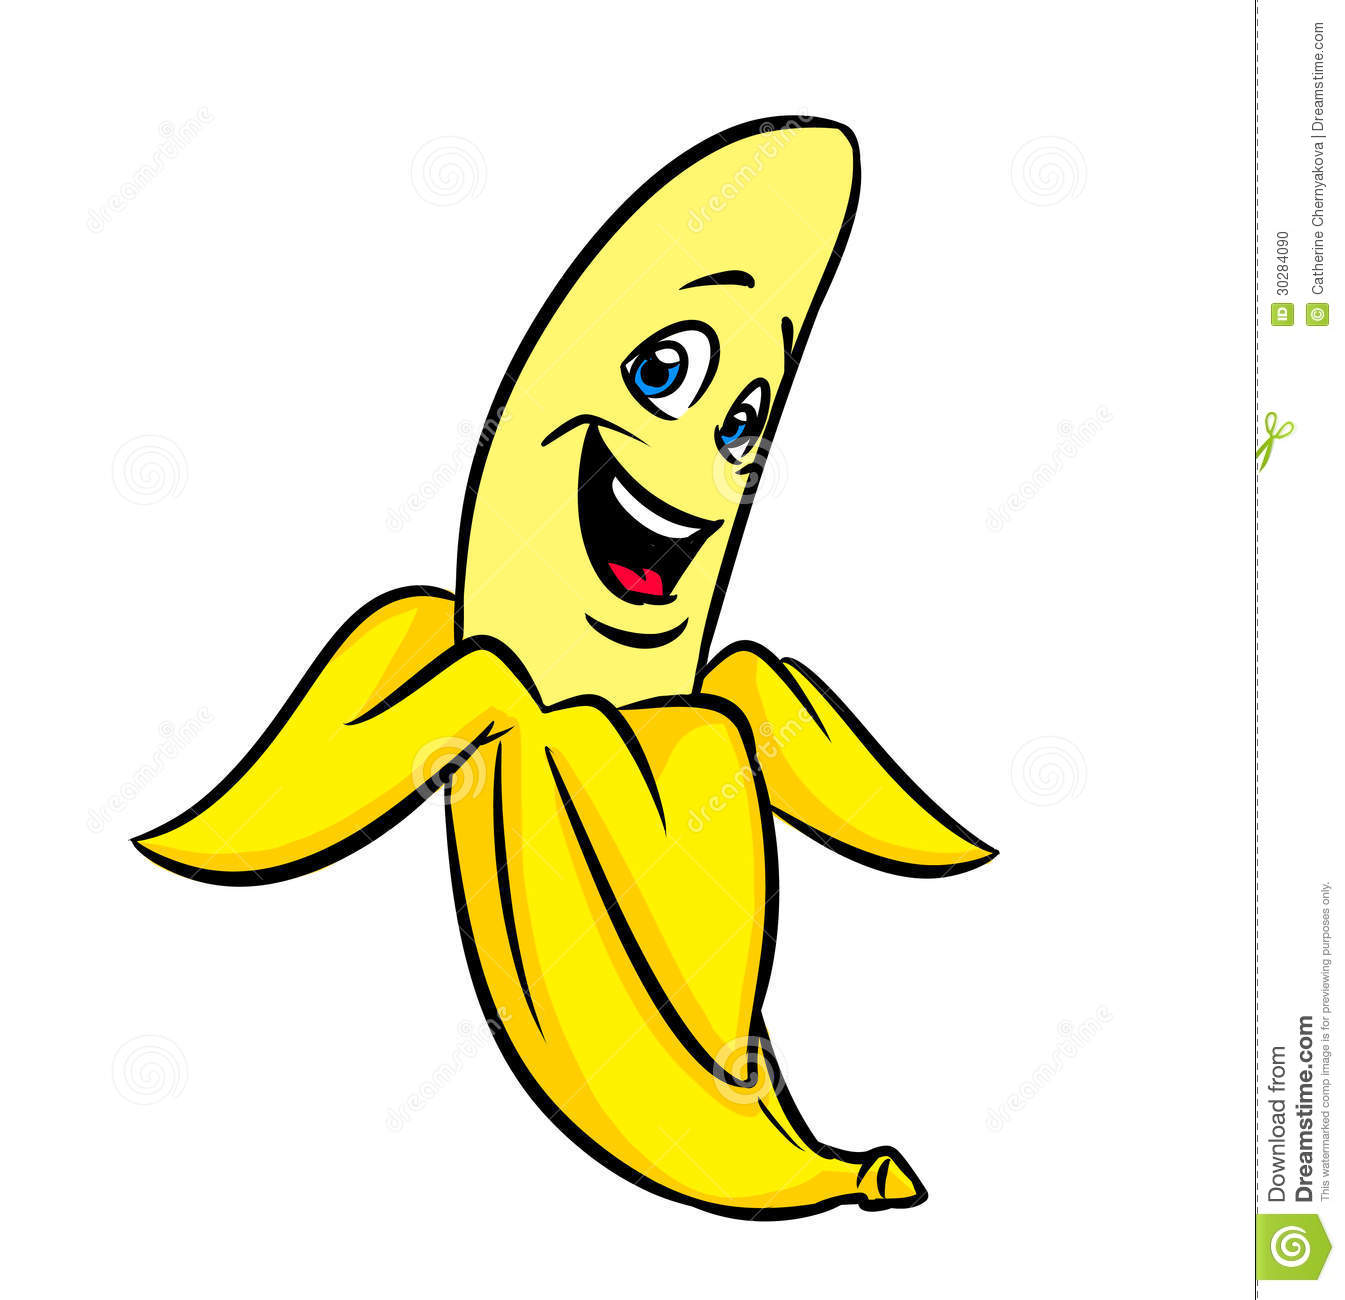 Image Result For Id Banana